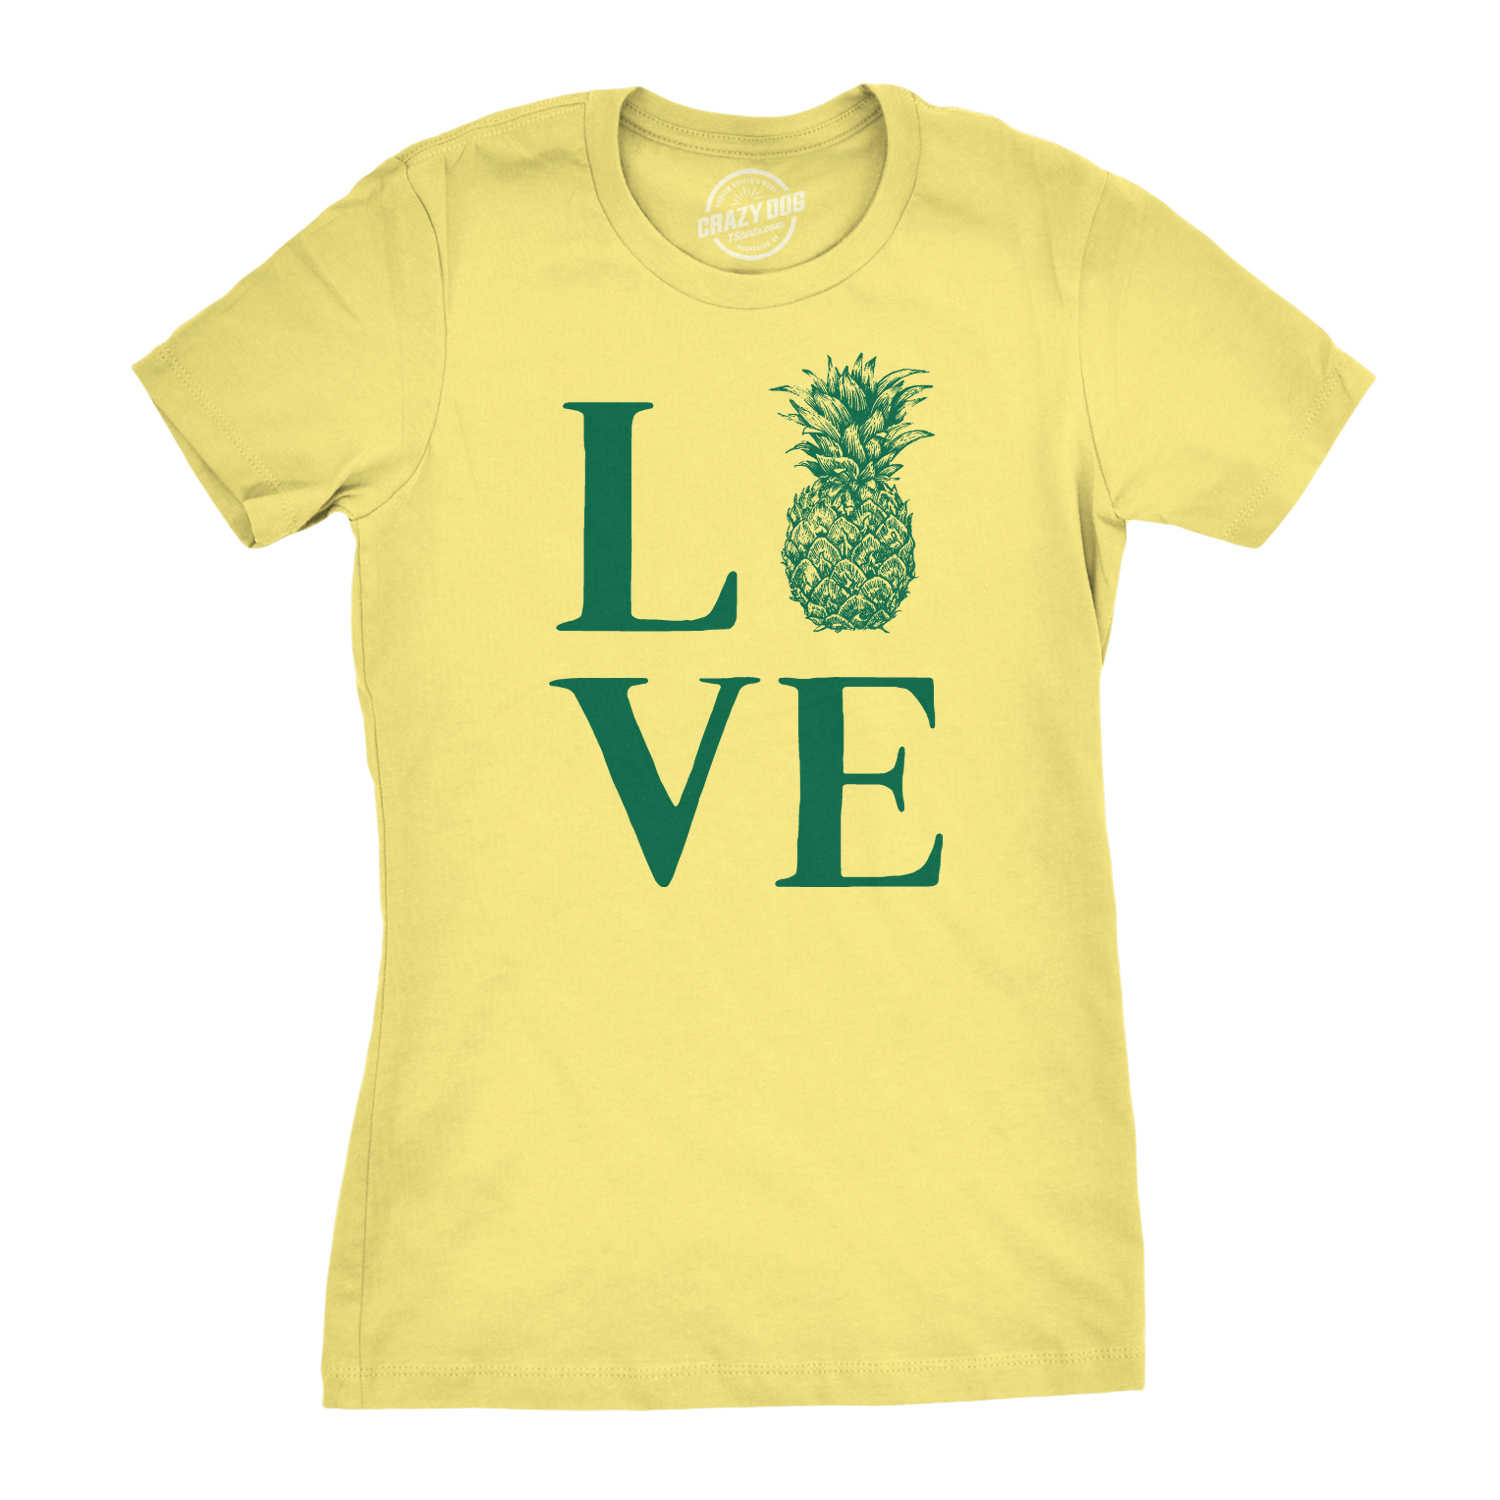 Pineapple Hand Fashion Mens T-Shirt and Hats Youth /& Adult T-Shirts